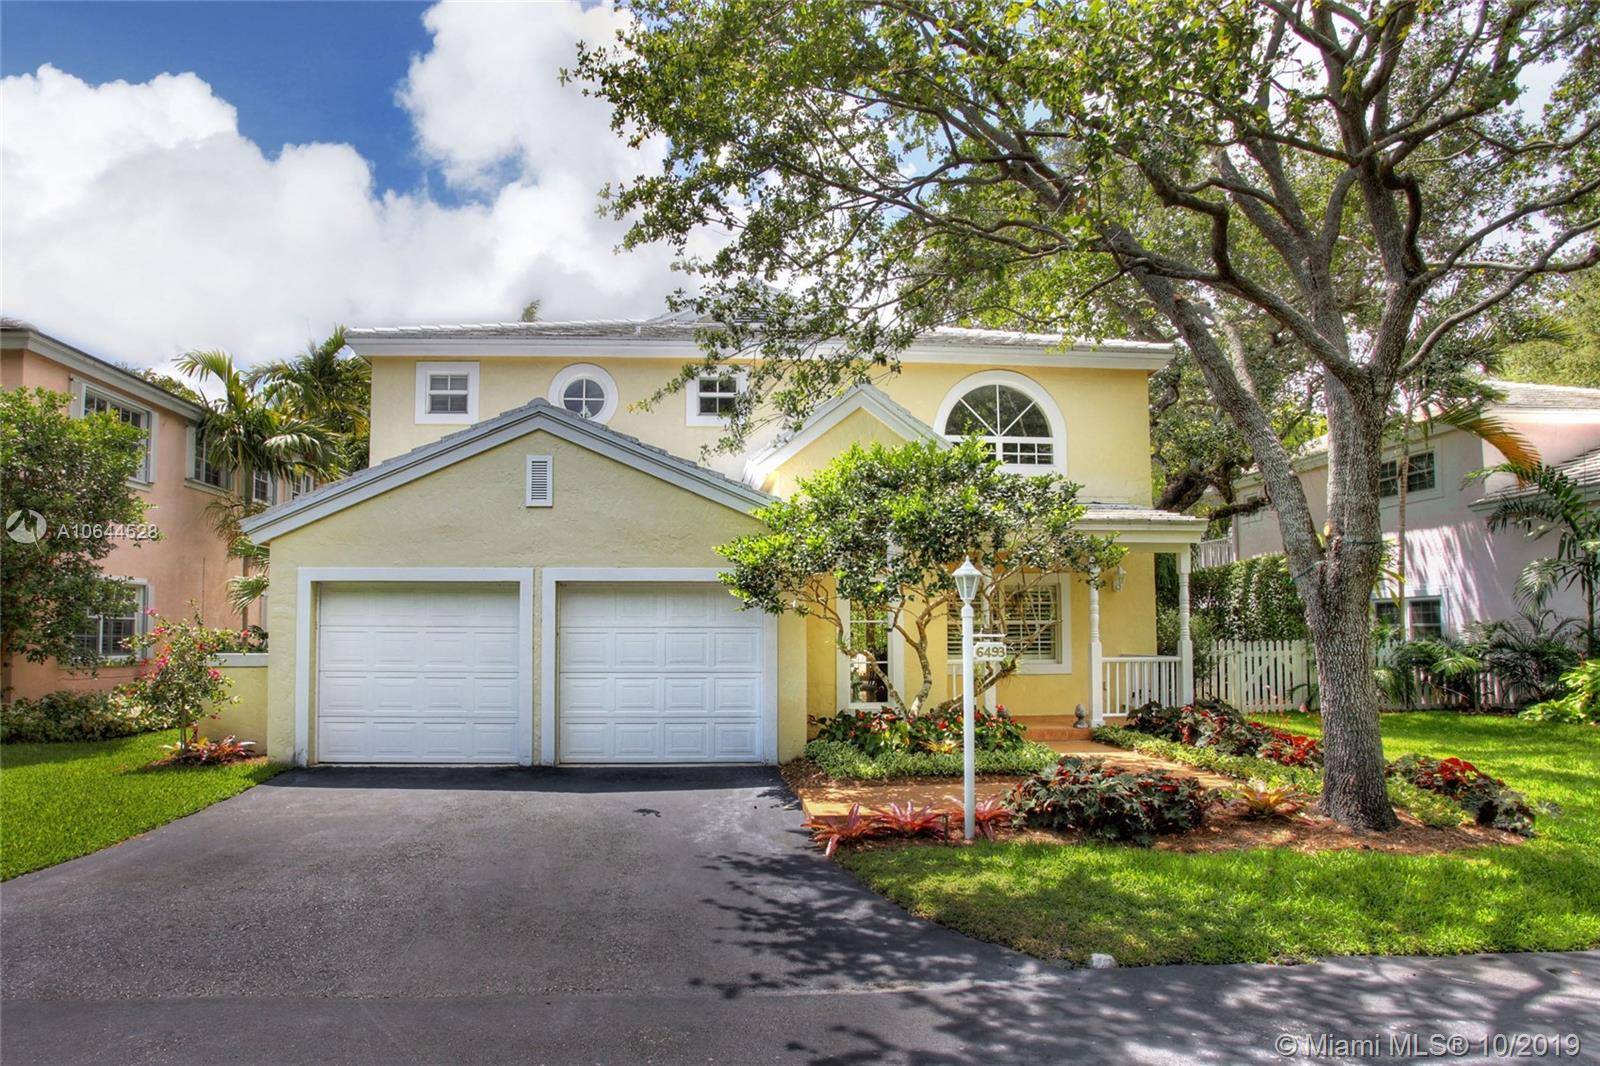 South Miami - 6493 Sunset Dr (Orr's Pond), South Miami, FL 33143